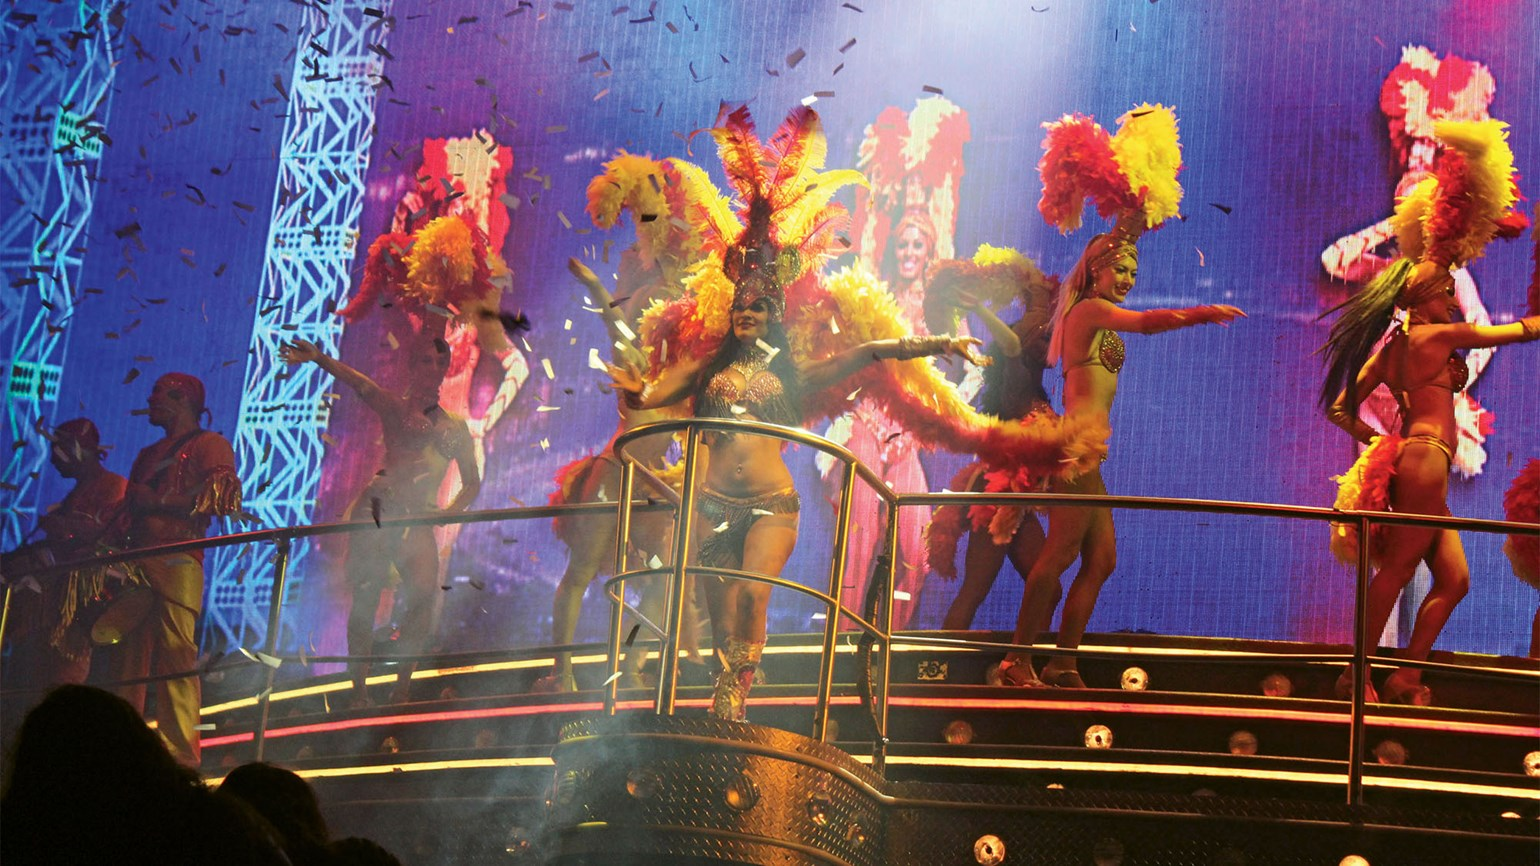 Embracing kitsch at Coco Bongo